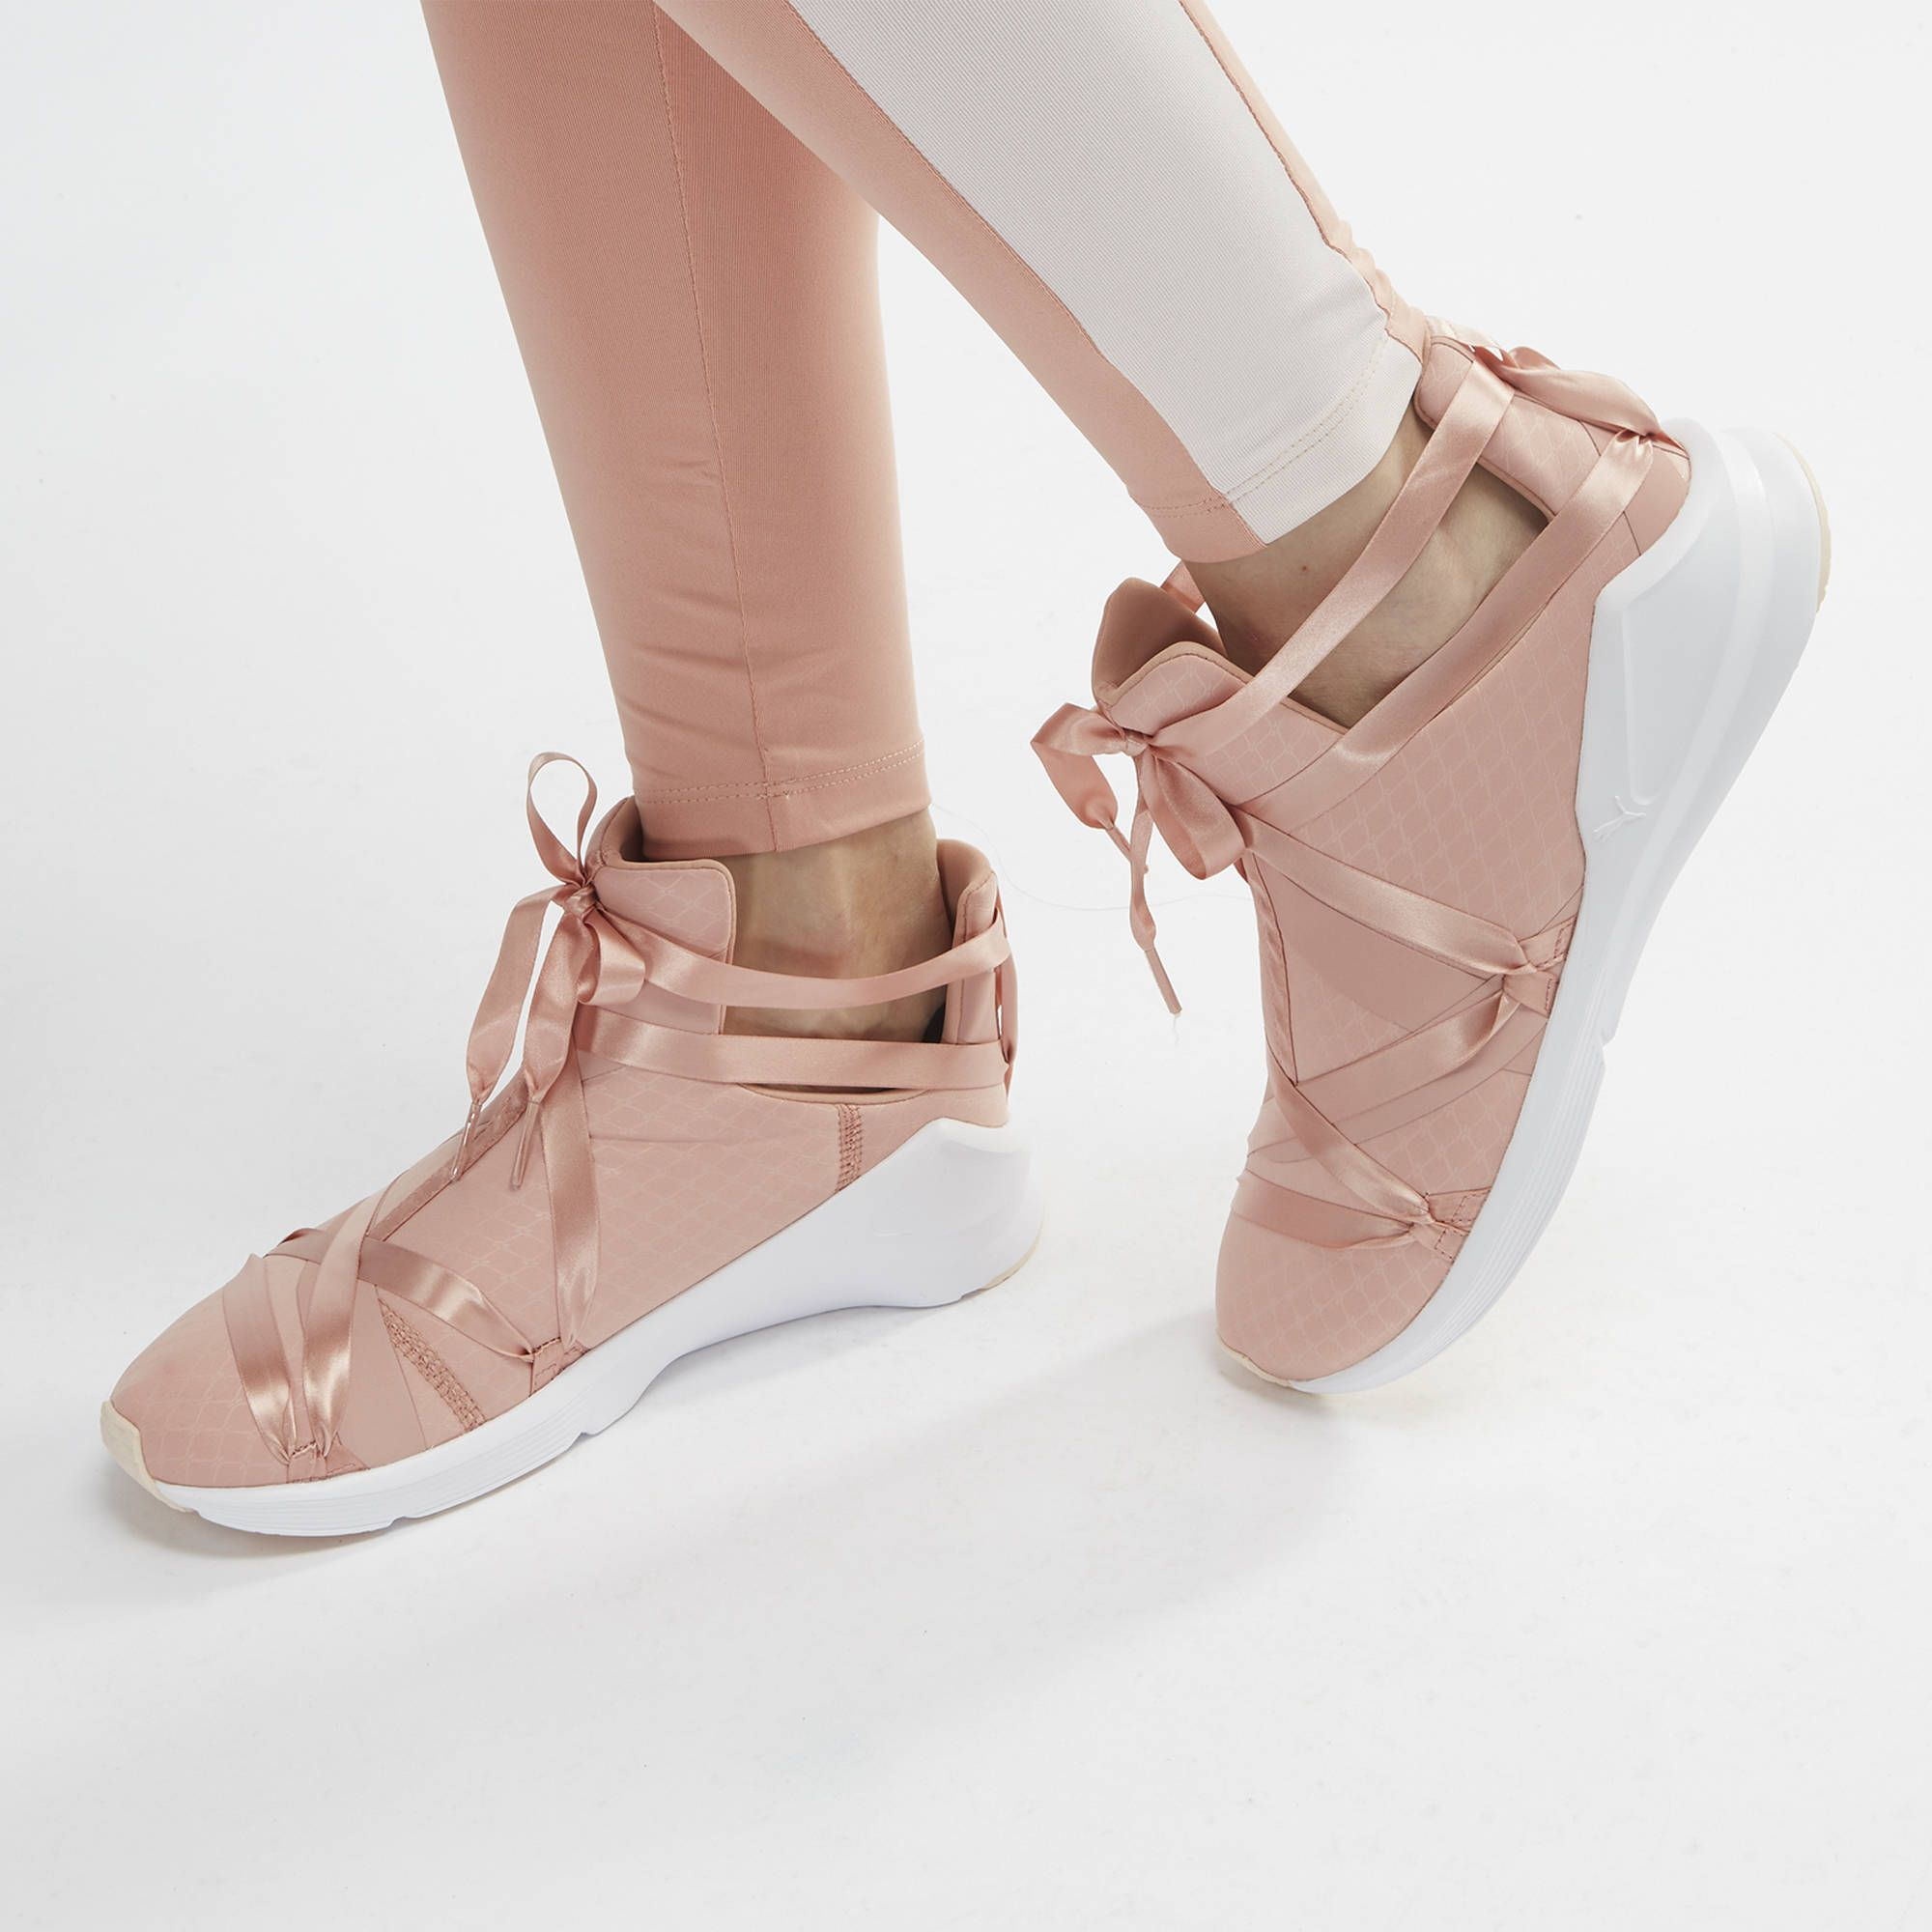 6c5f1c5172b3 Image result for Fierce Rope Satin En Pointe Women s Trainers ...